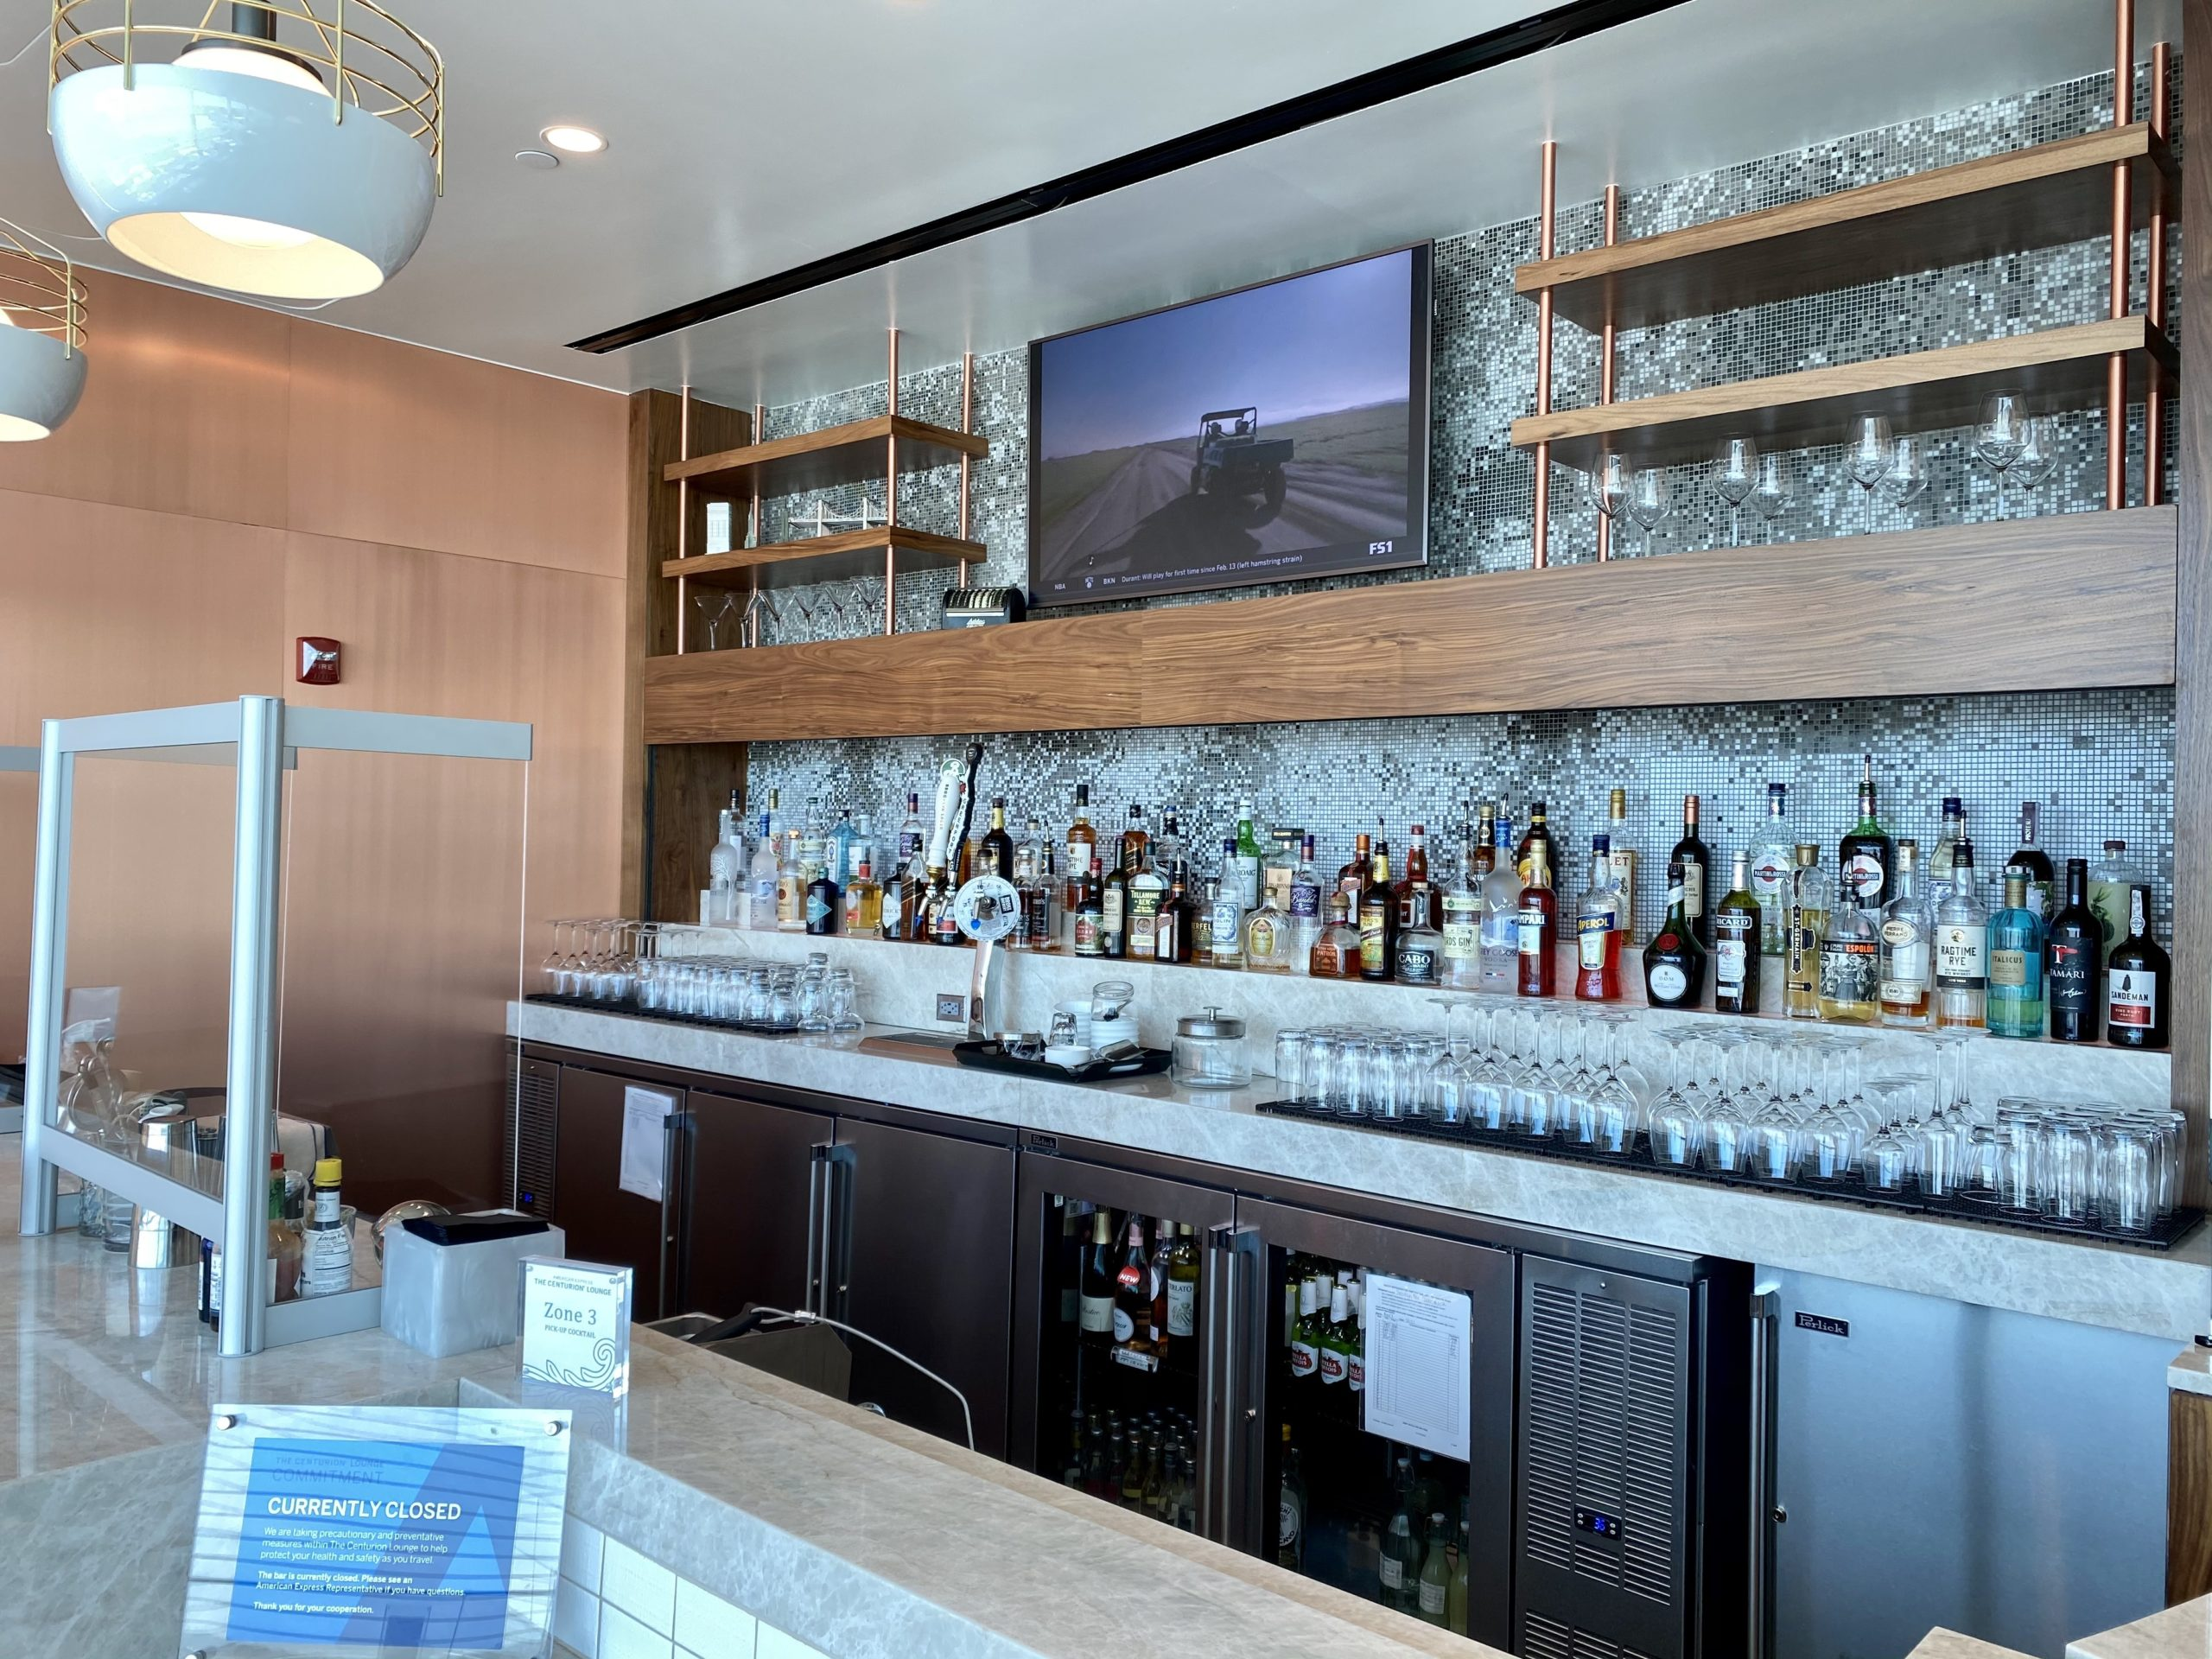 JFK Centurion Lounge bar